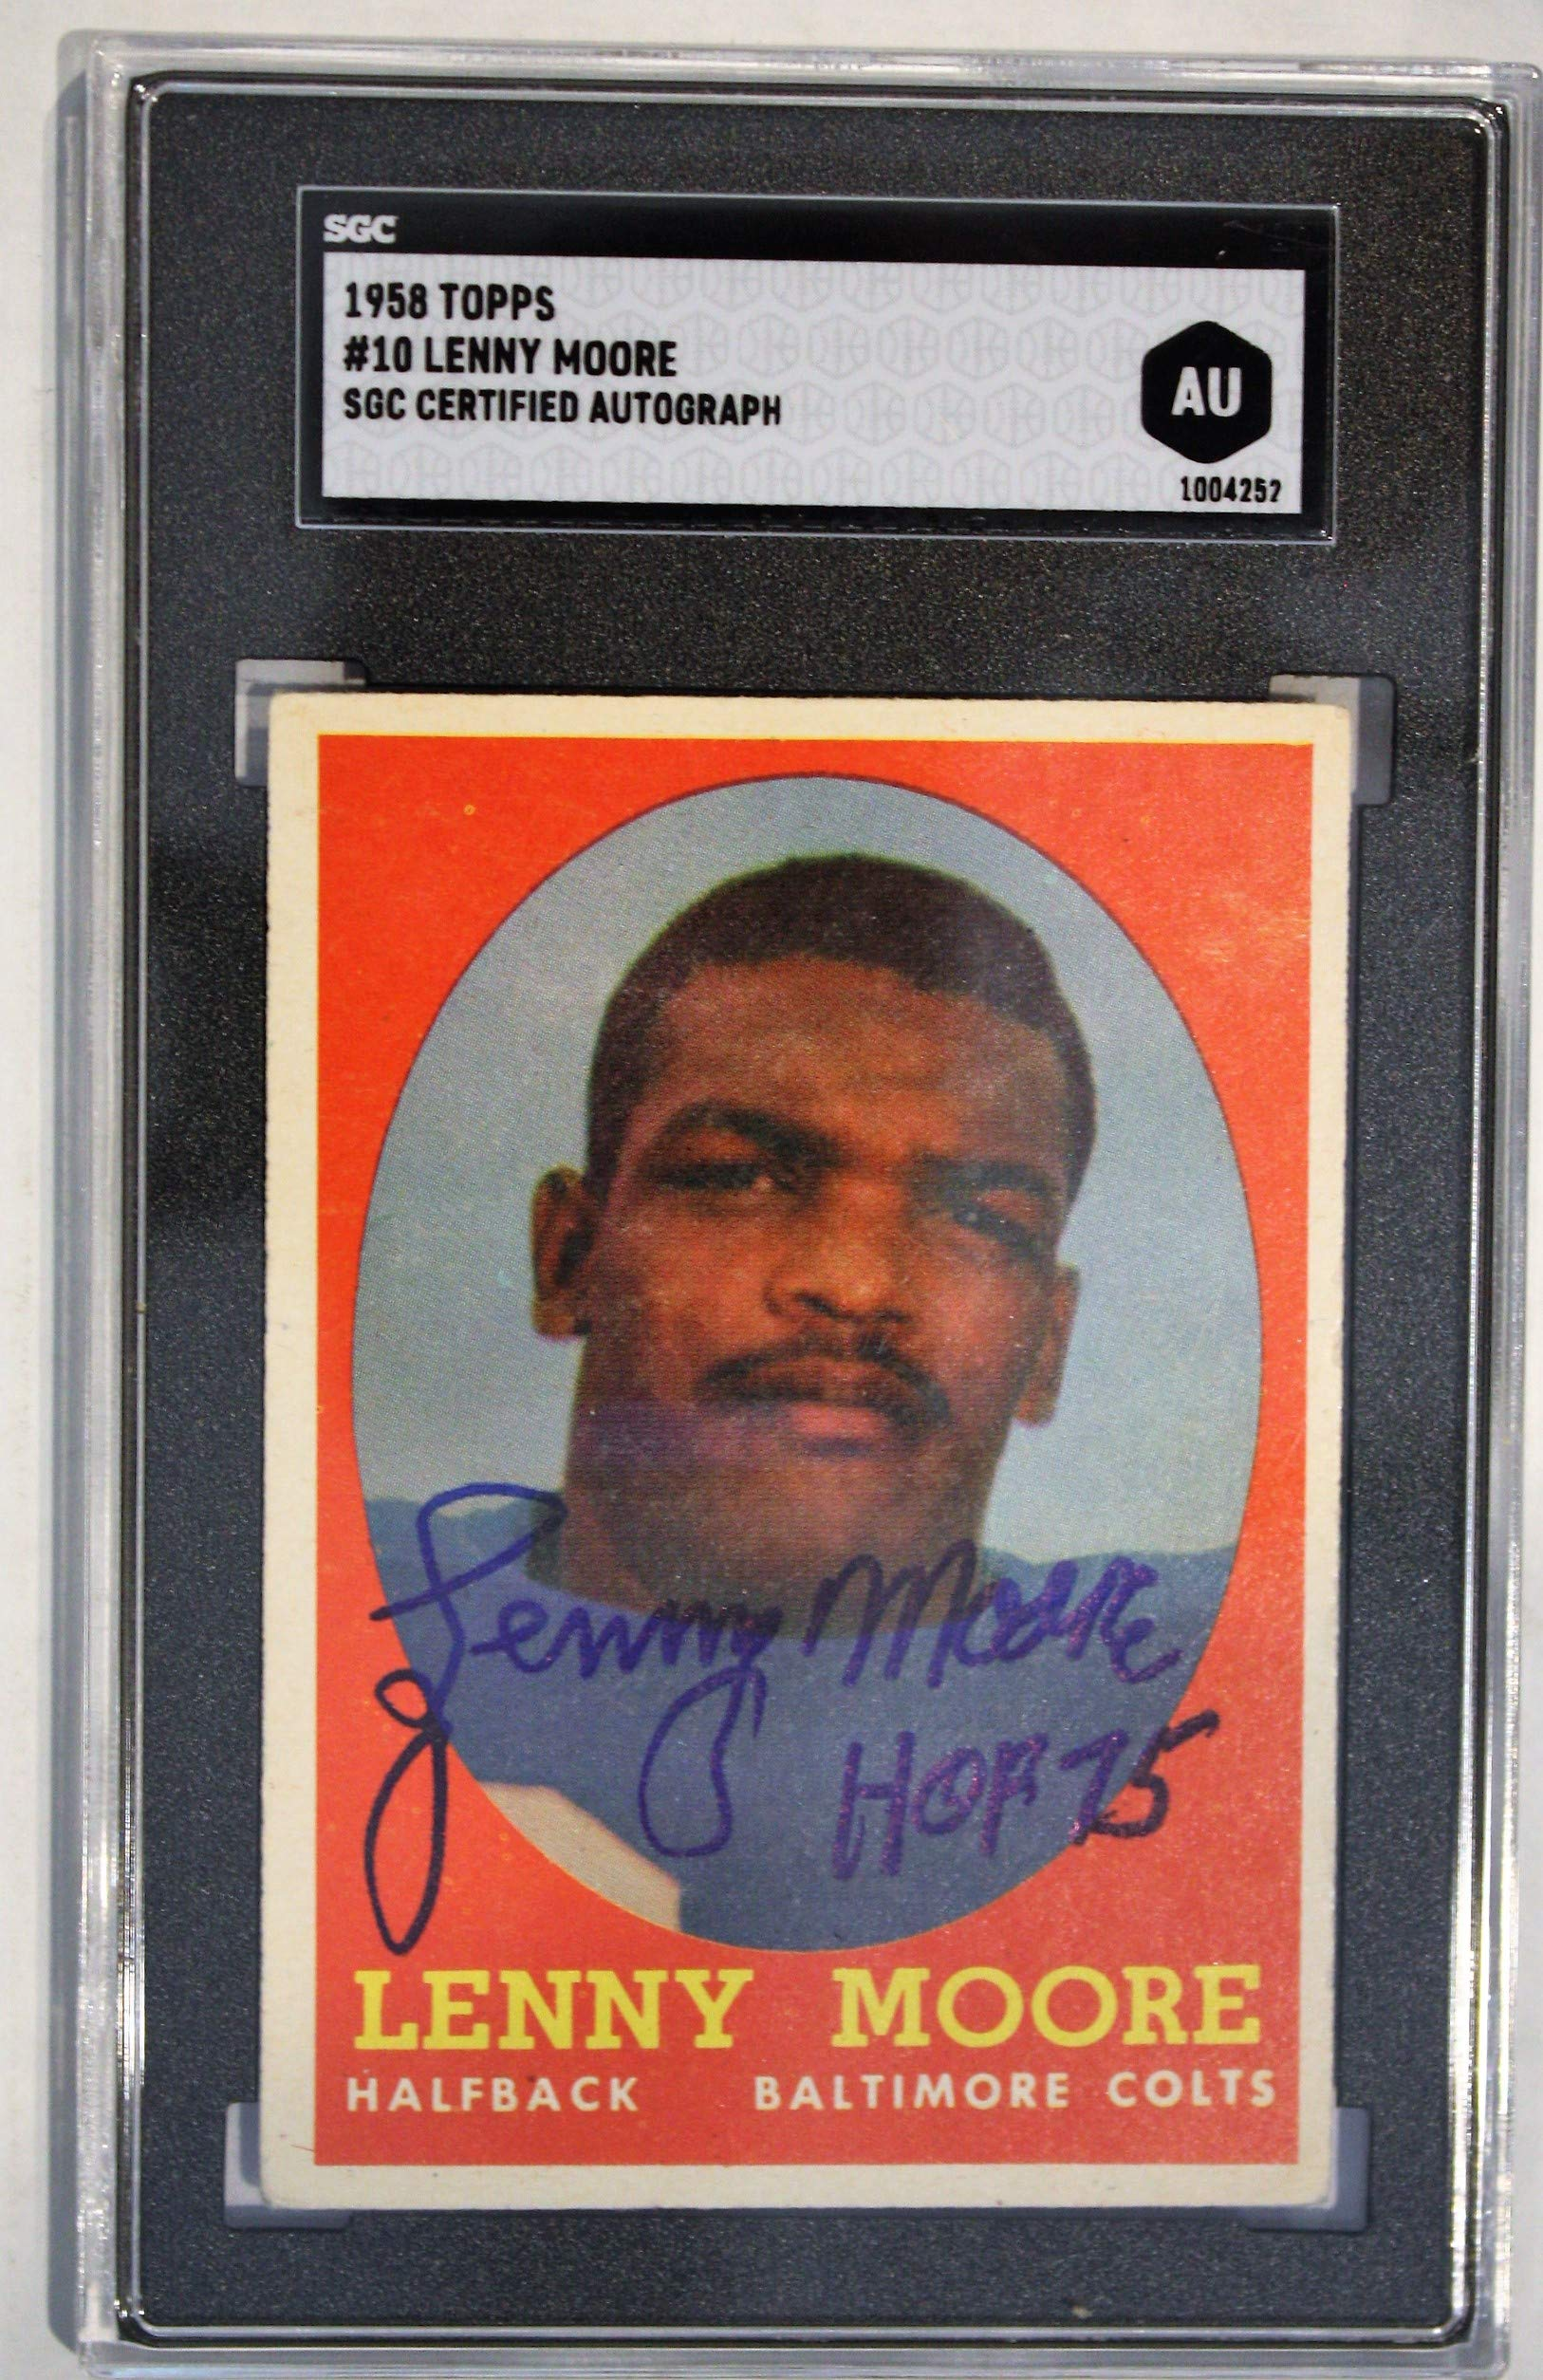 Autographed Lenny Moore Baltimore Colts 1958 Topps Card, 10 SGC Slabbed